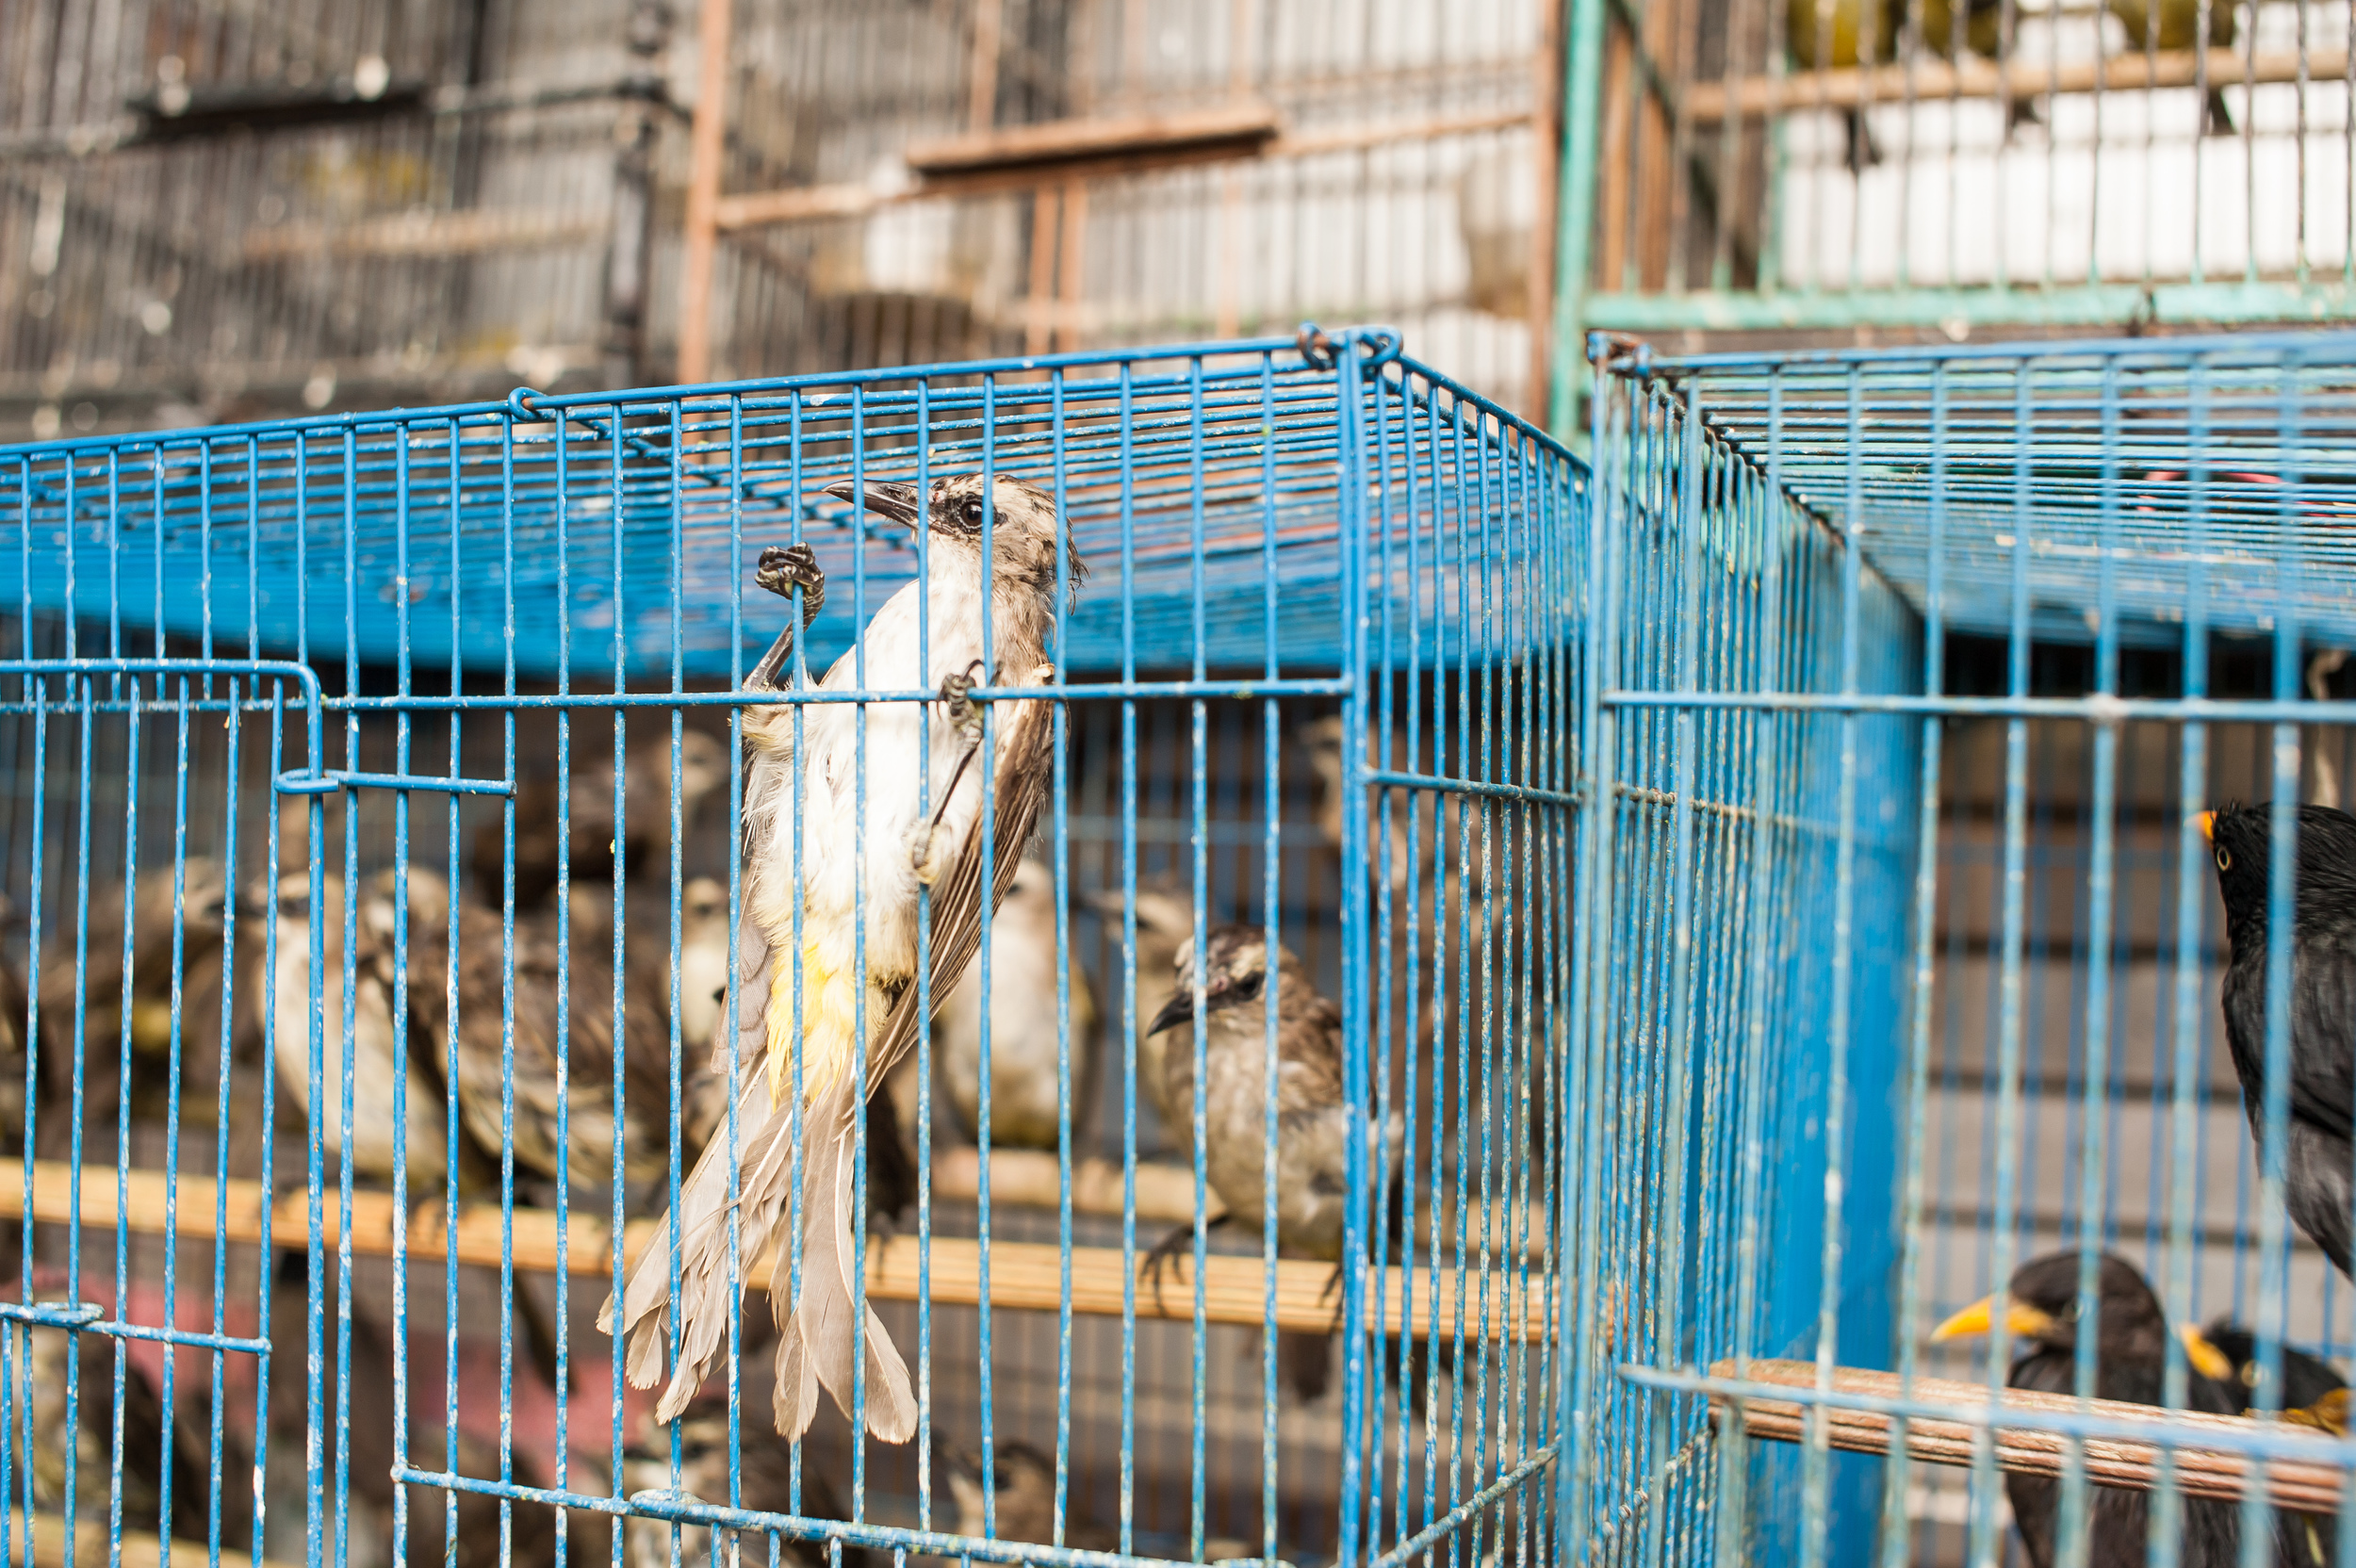 birds-in-a-cage-malang.jpg